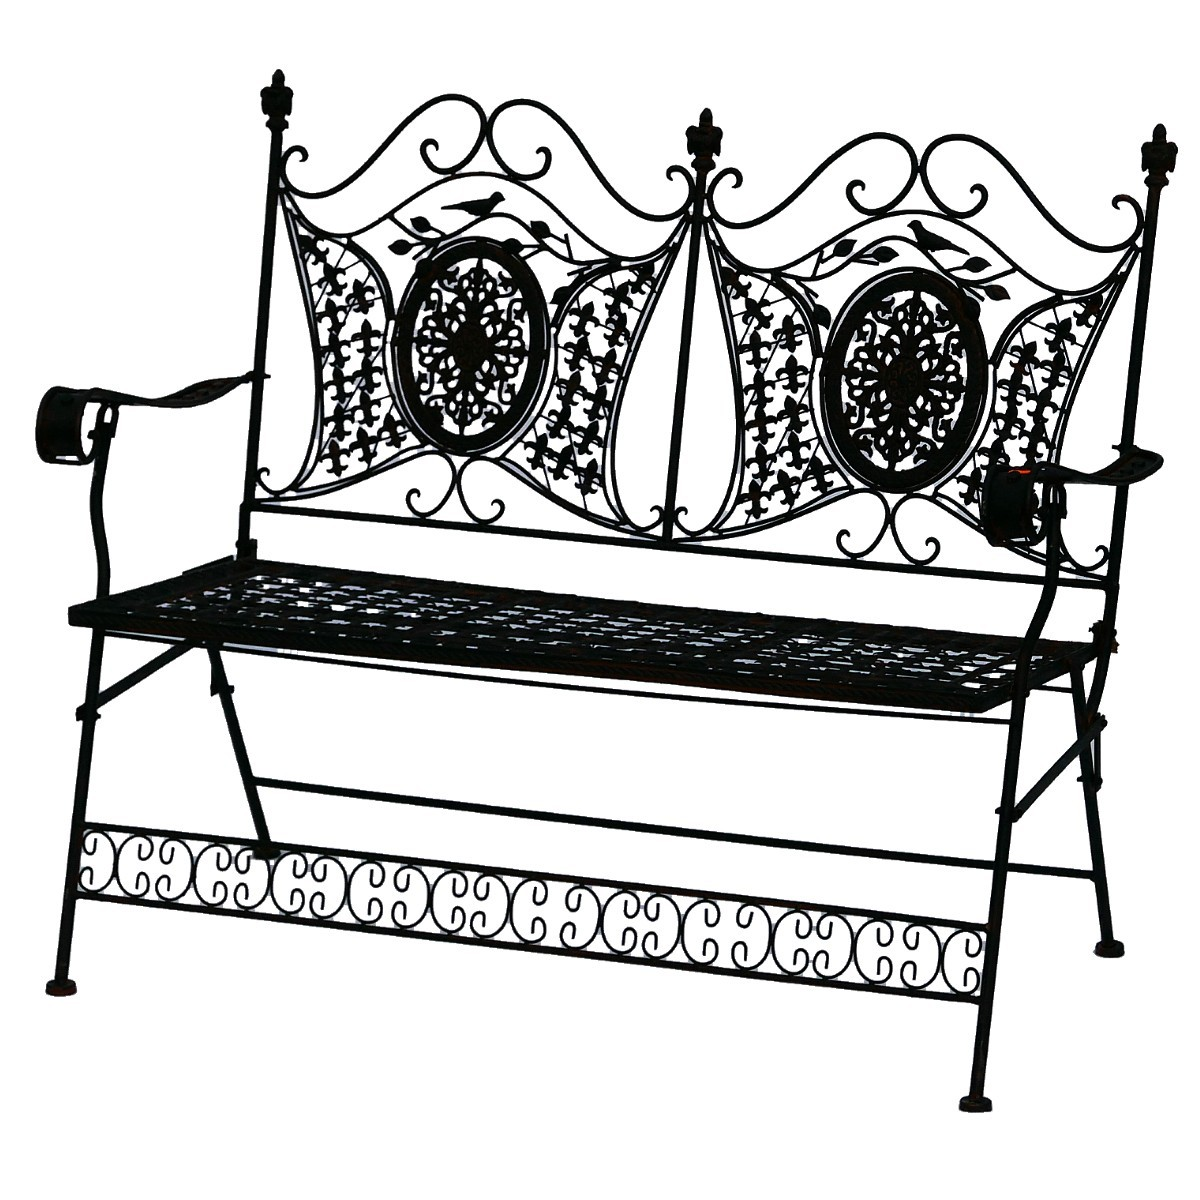 bank zweierbank braun metall sitzbank f r garten vorgarten mit kreismotiv. Black Bedroom Furniture Sets. Home Design Ideas